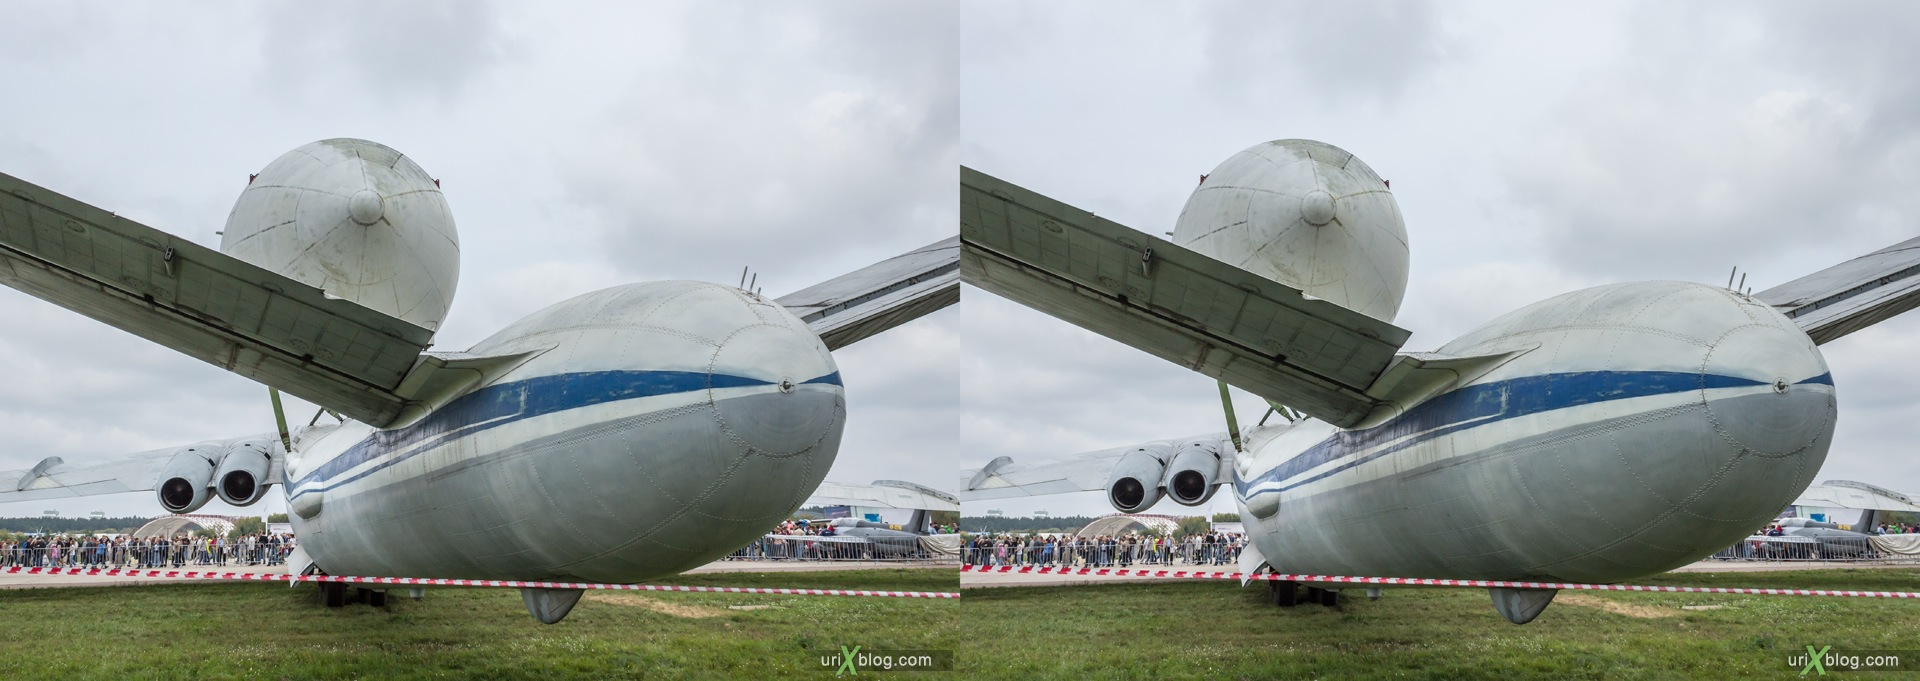 2013, VM-T Atlant, MAKS, International Aviation and Space Salon, Russia, Ramenskoye airfield, airplane, 3D, stereo pair, cross-eyed, crossview, cross view stereo pair, stereoscopic